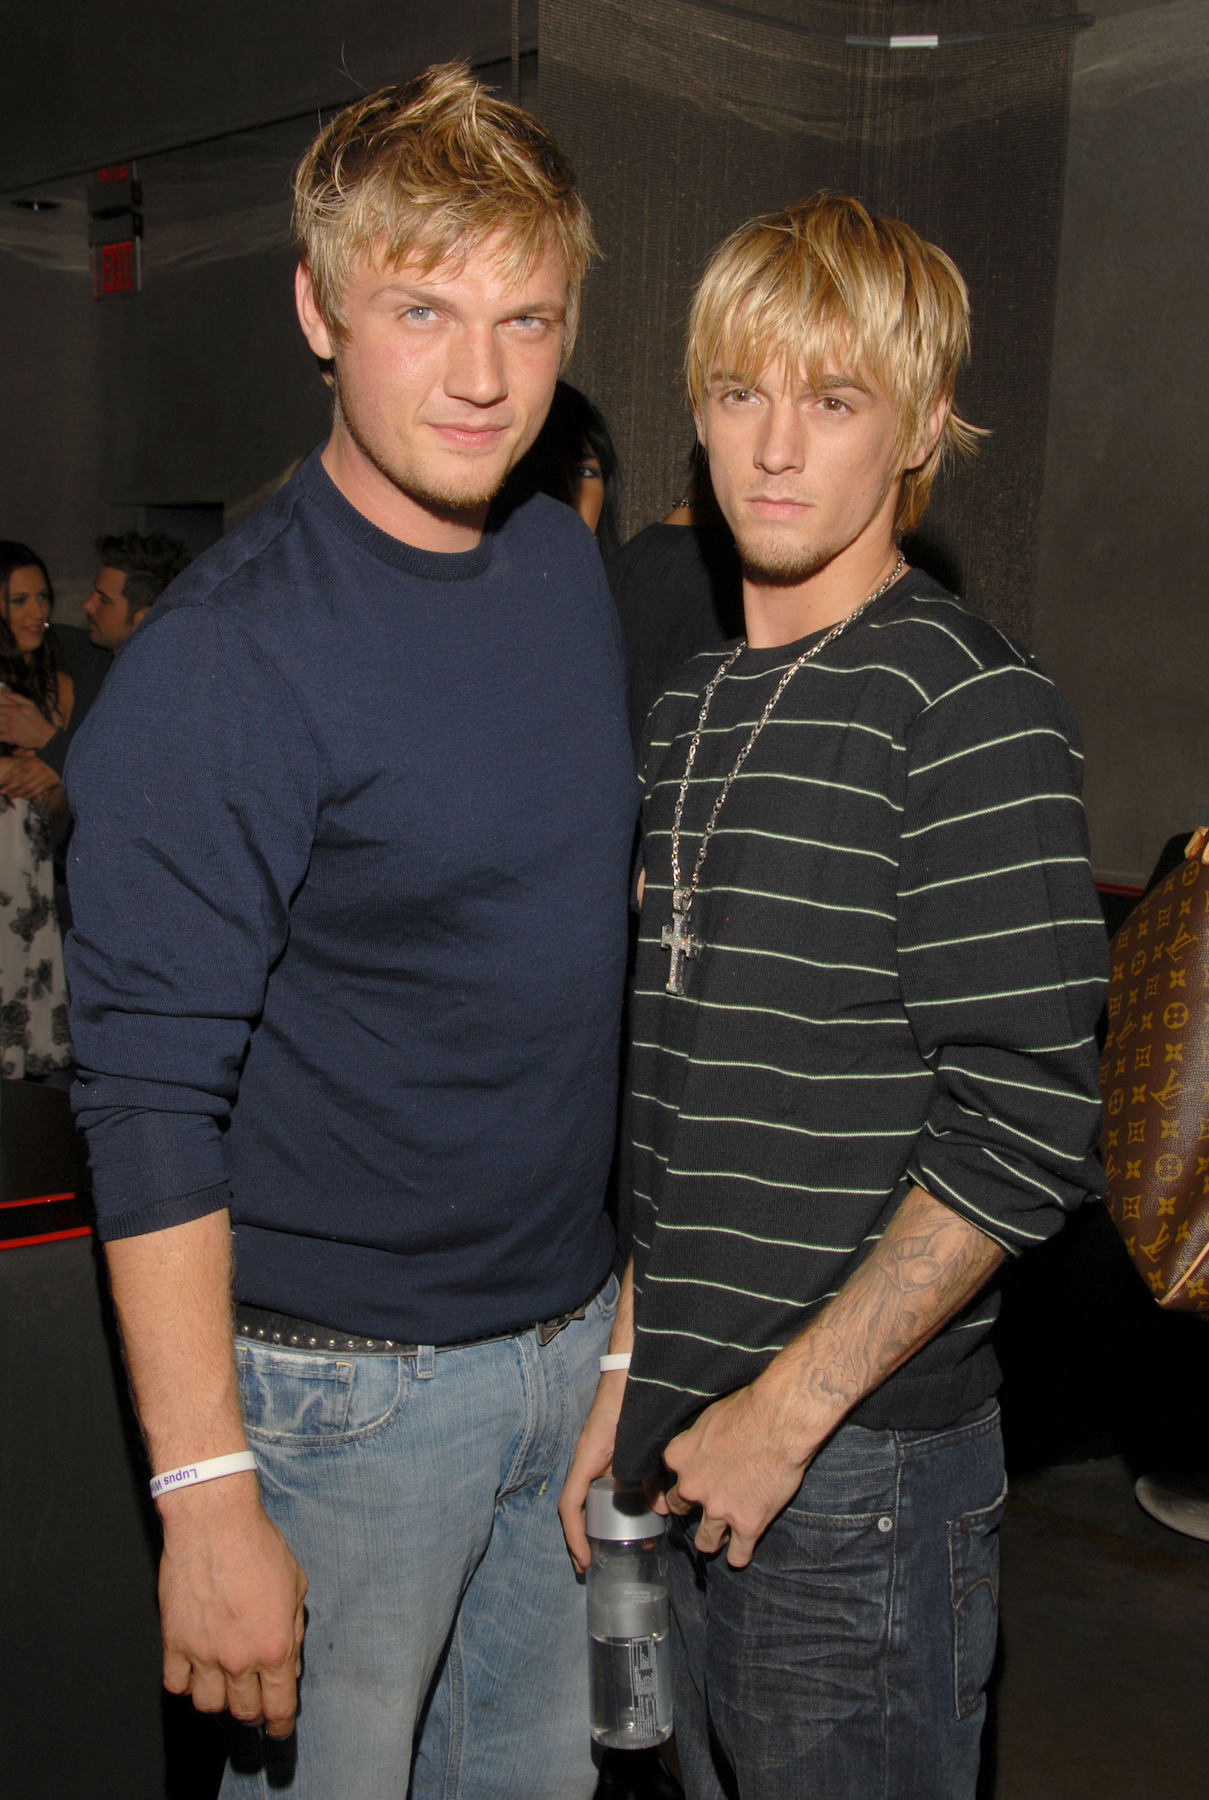 Nick Carter Sends Message to Brother Aaron After DUI Arrest